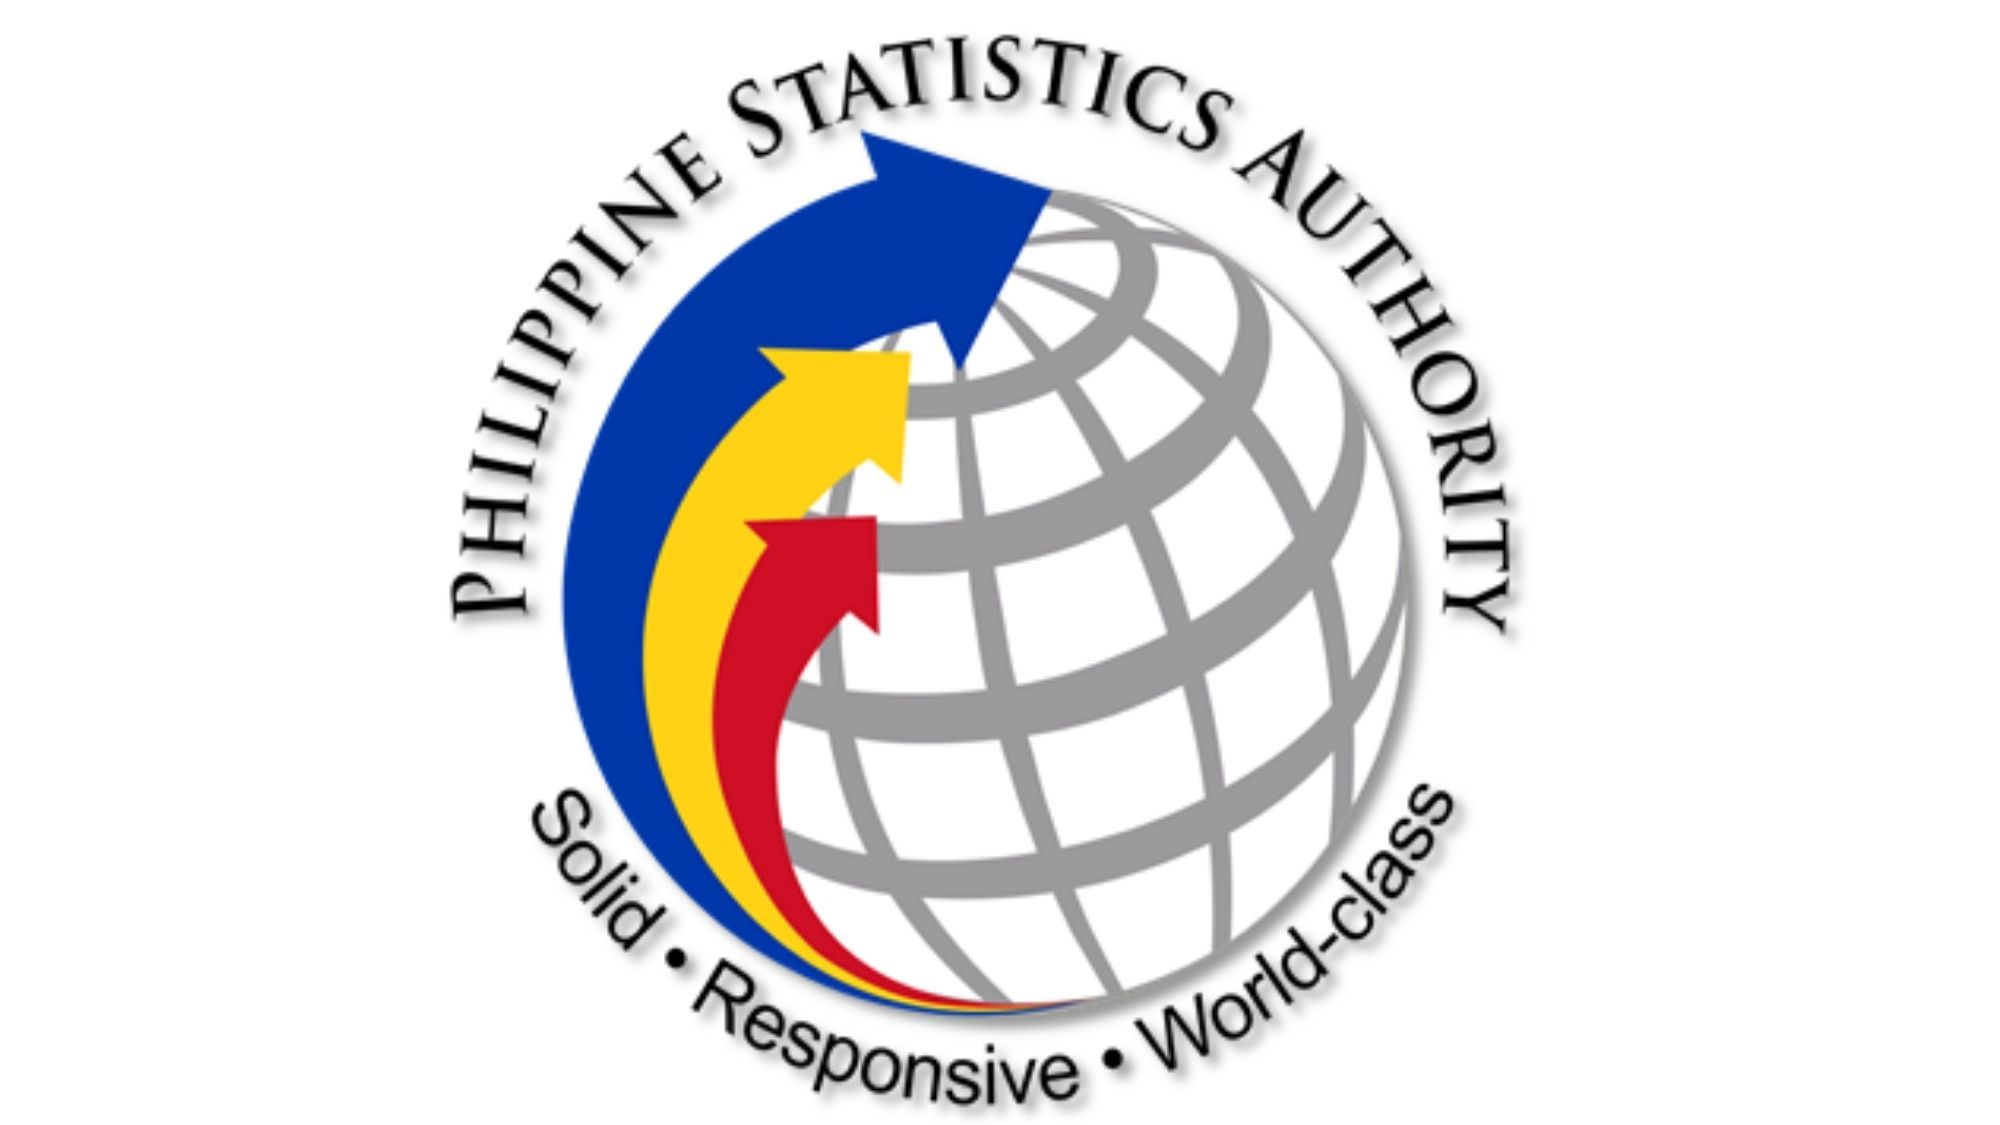 Philippines Statistics Authority